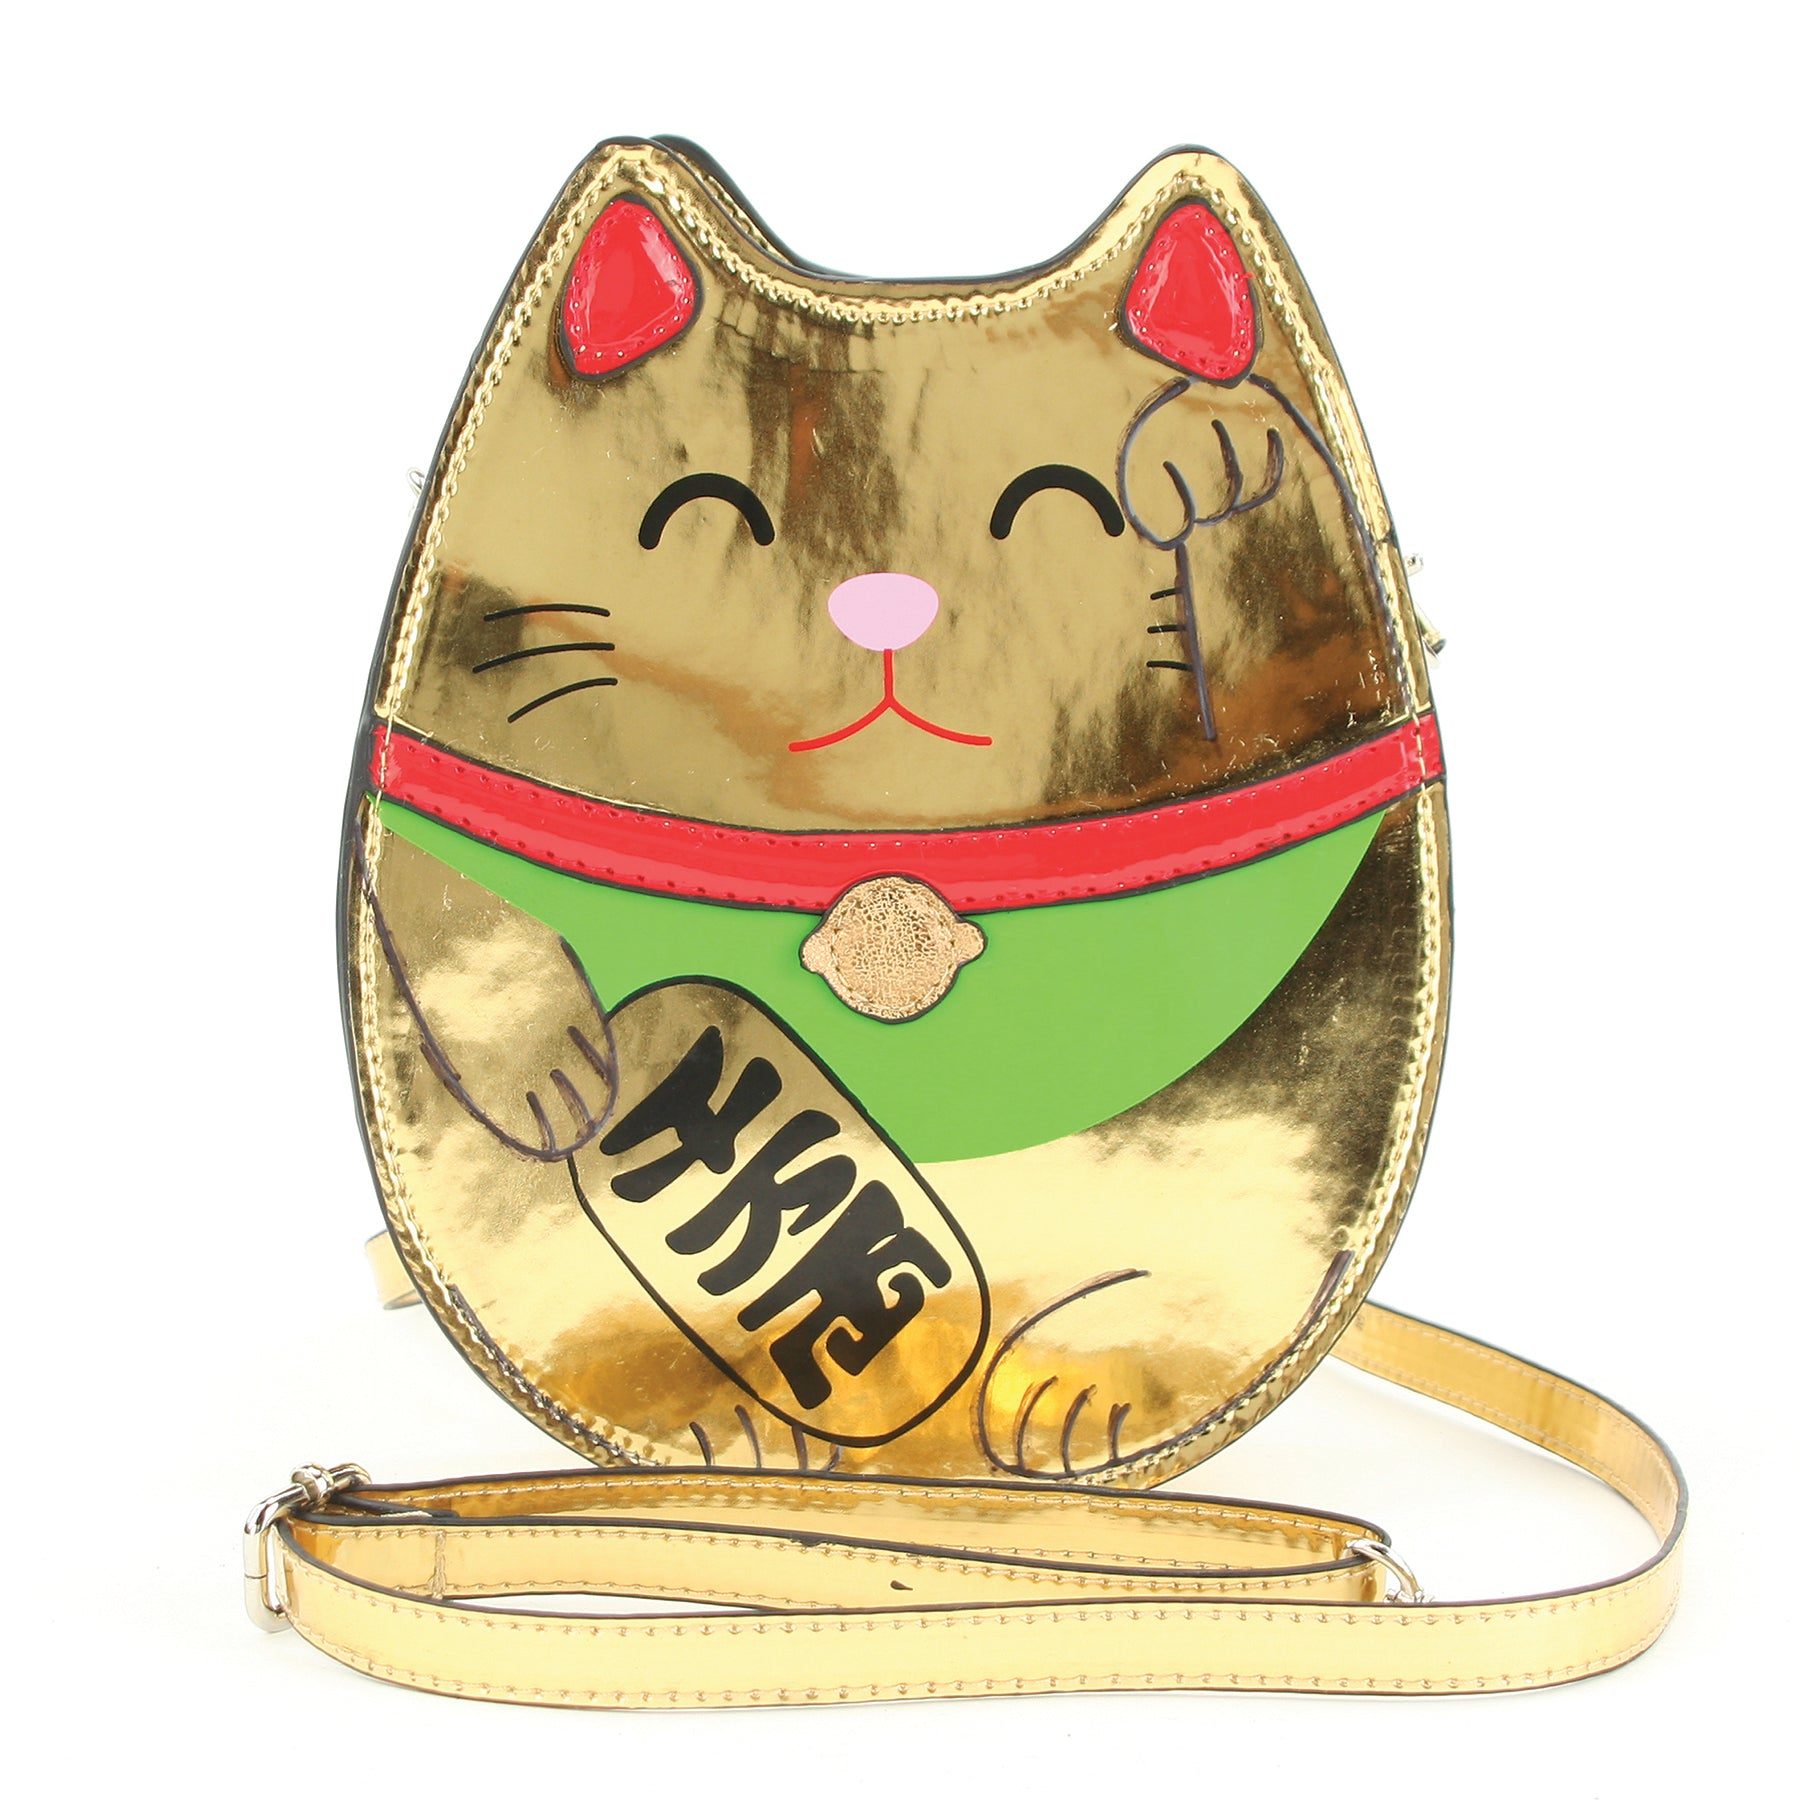 Golden Lucky Cat Cross Body Bag in Vinyl Material front view